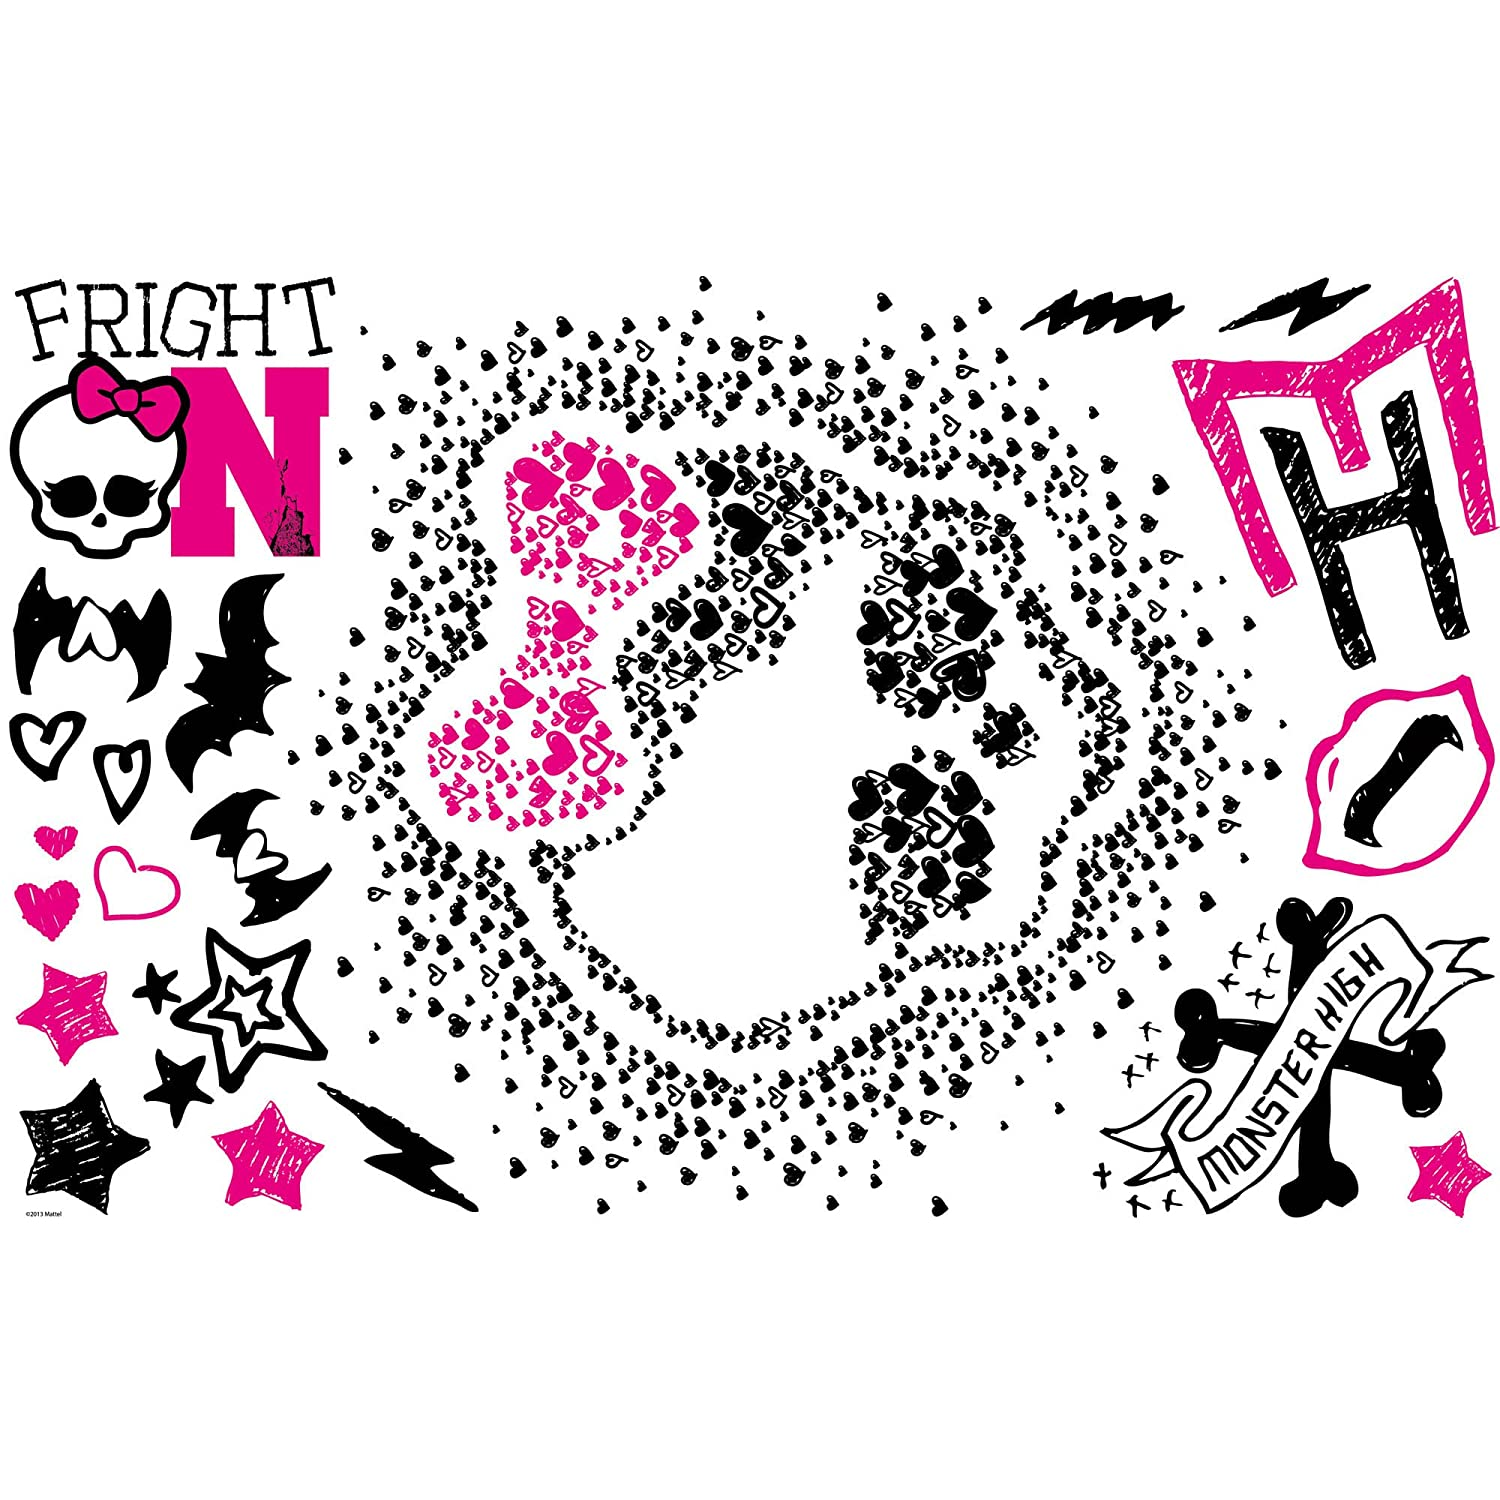 Roommates Rmk2258Slm Monster High Heart Skullette Peel And Stick Wall Decals - Decorative Wall Appliques - Amazon.com  sc 1 st  Amazon.com & Roommates Rmk2258Slm Monster High Heart Skullette Peel And Stick ...